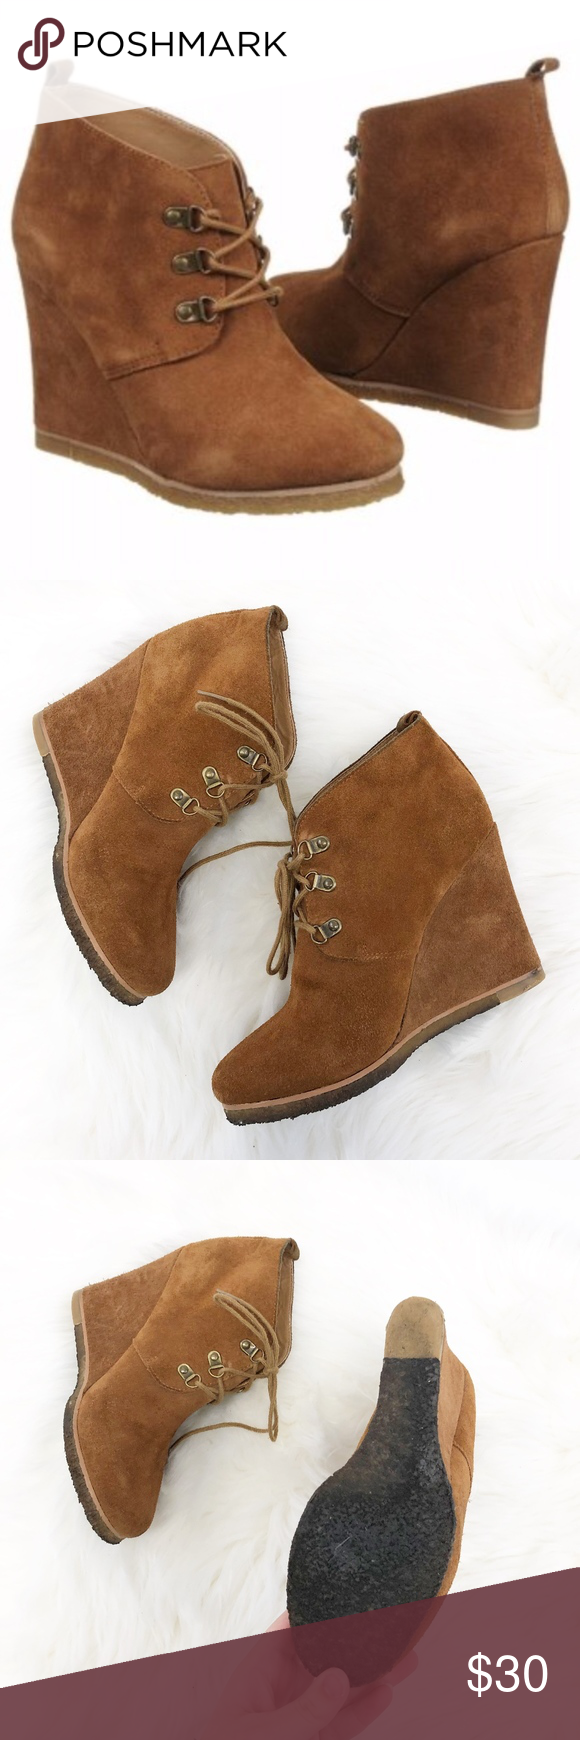 803c8f3453e steve madden   tanngoo wedge booties suede lace up in good used ...